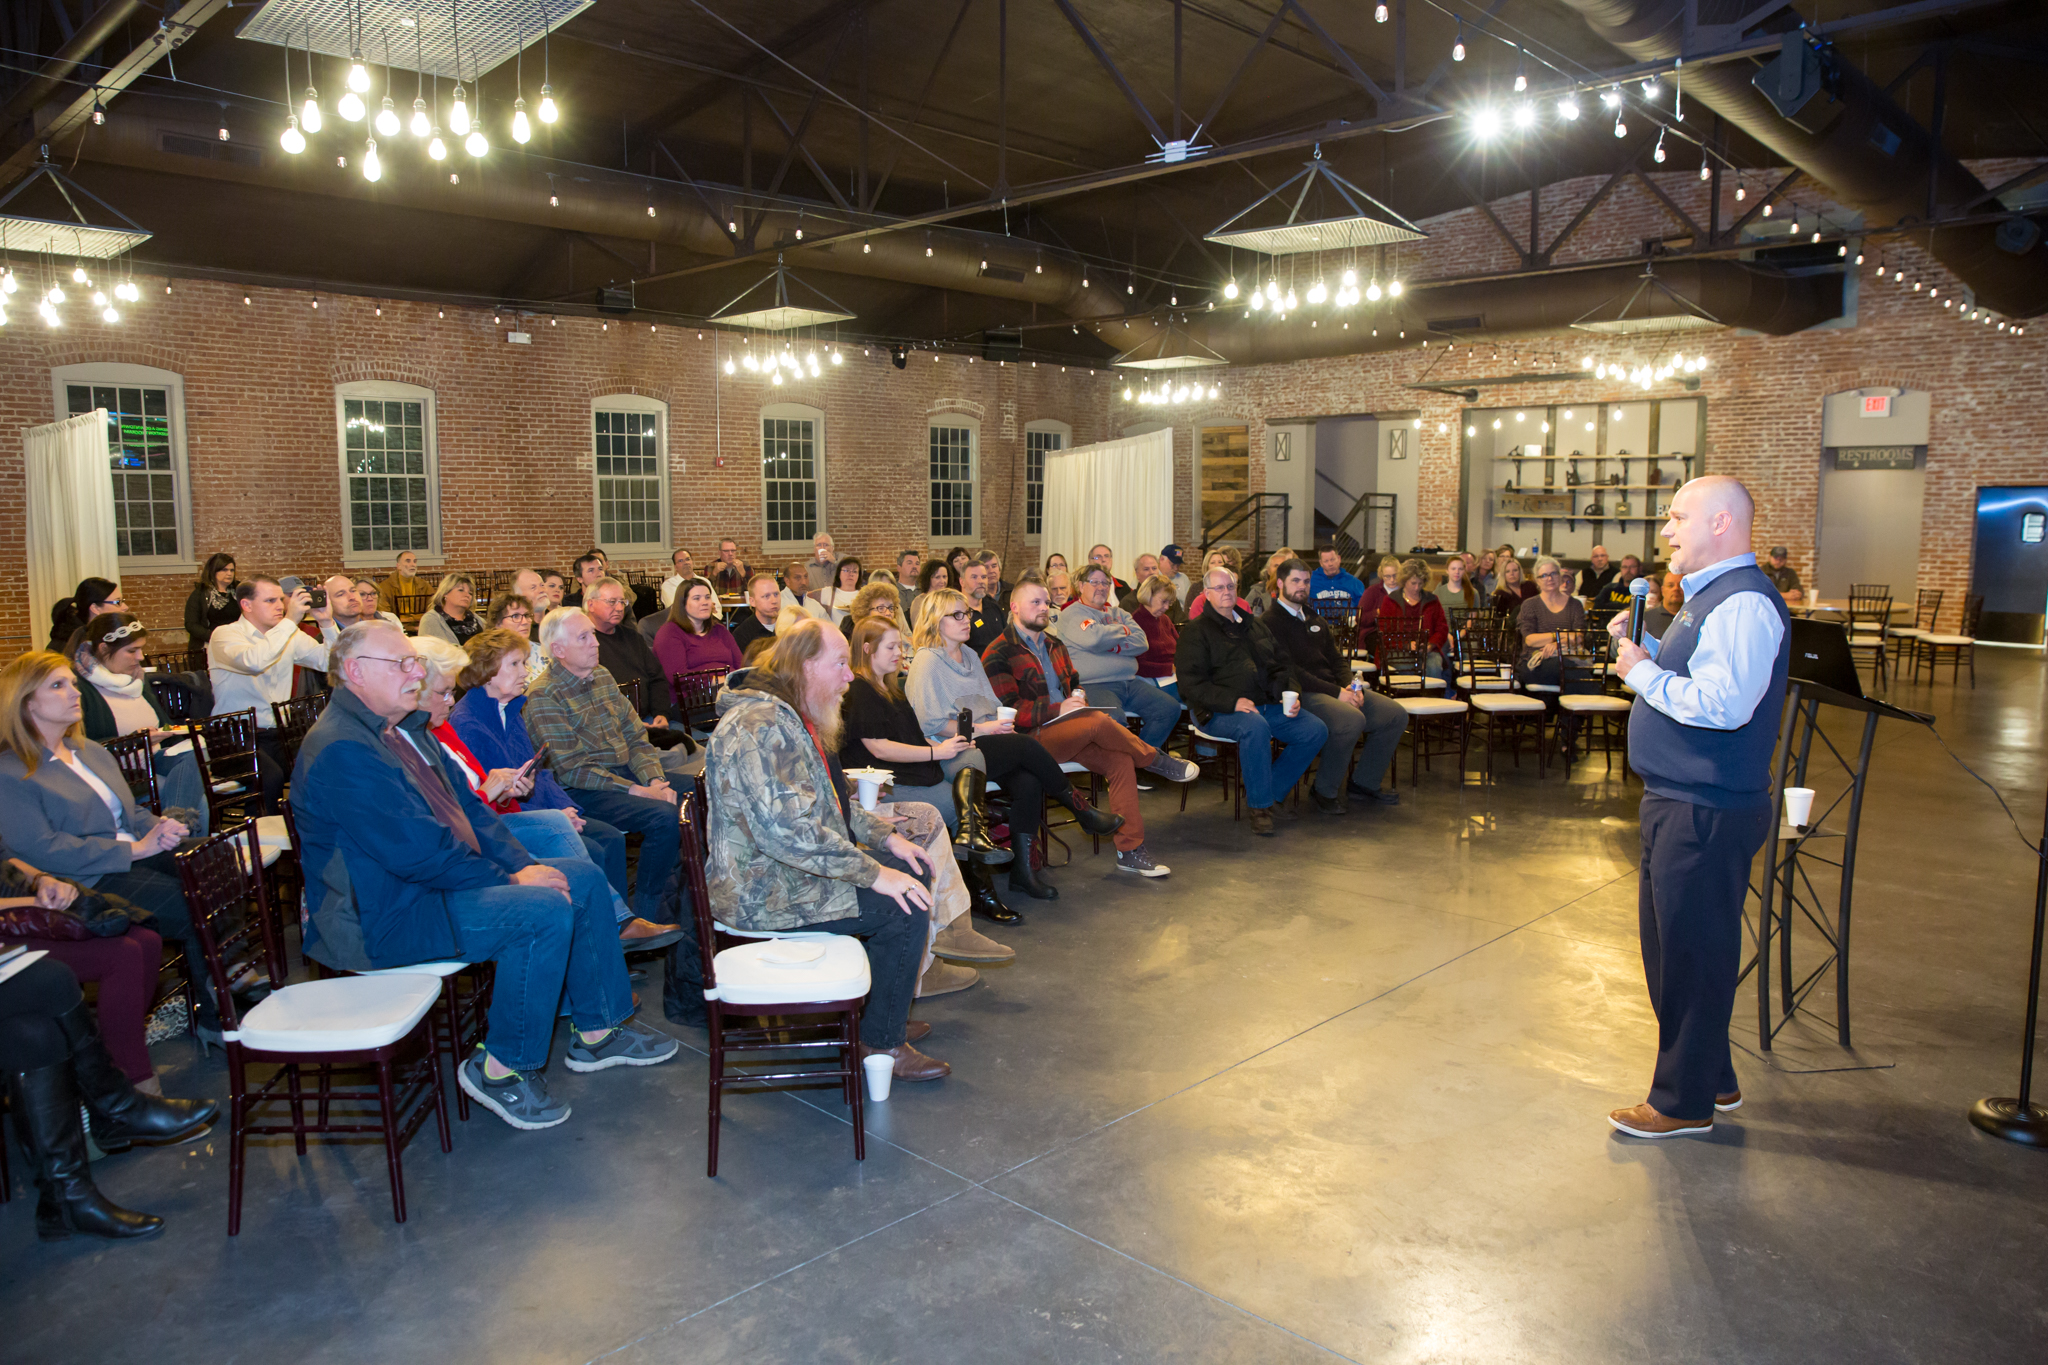 Over 100 people gathered at the Beck Event Space for a town hall meeting to discus the revitalization of the Historic Harrisonville Square.